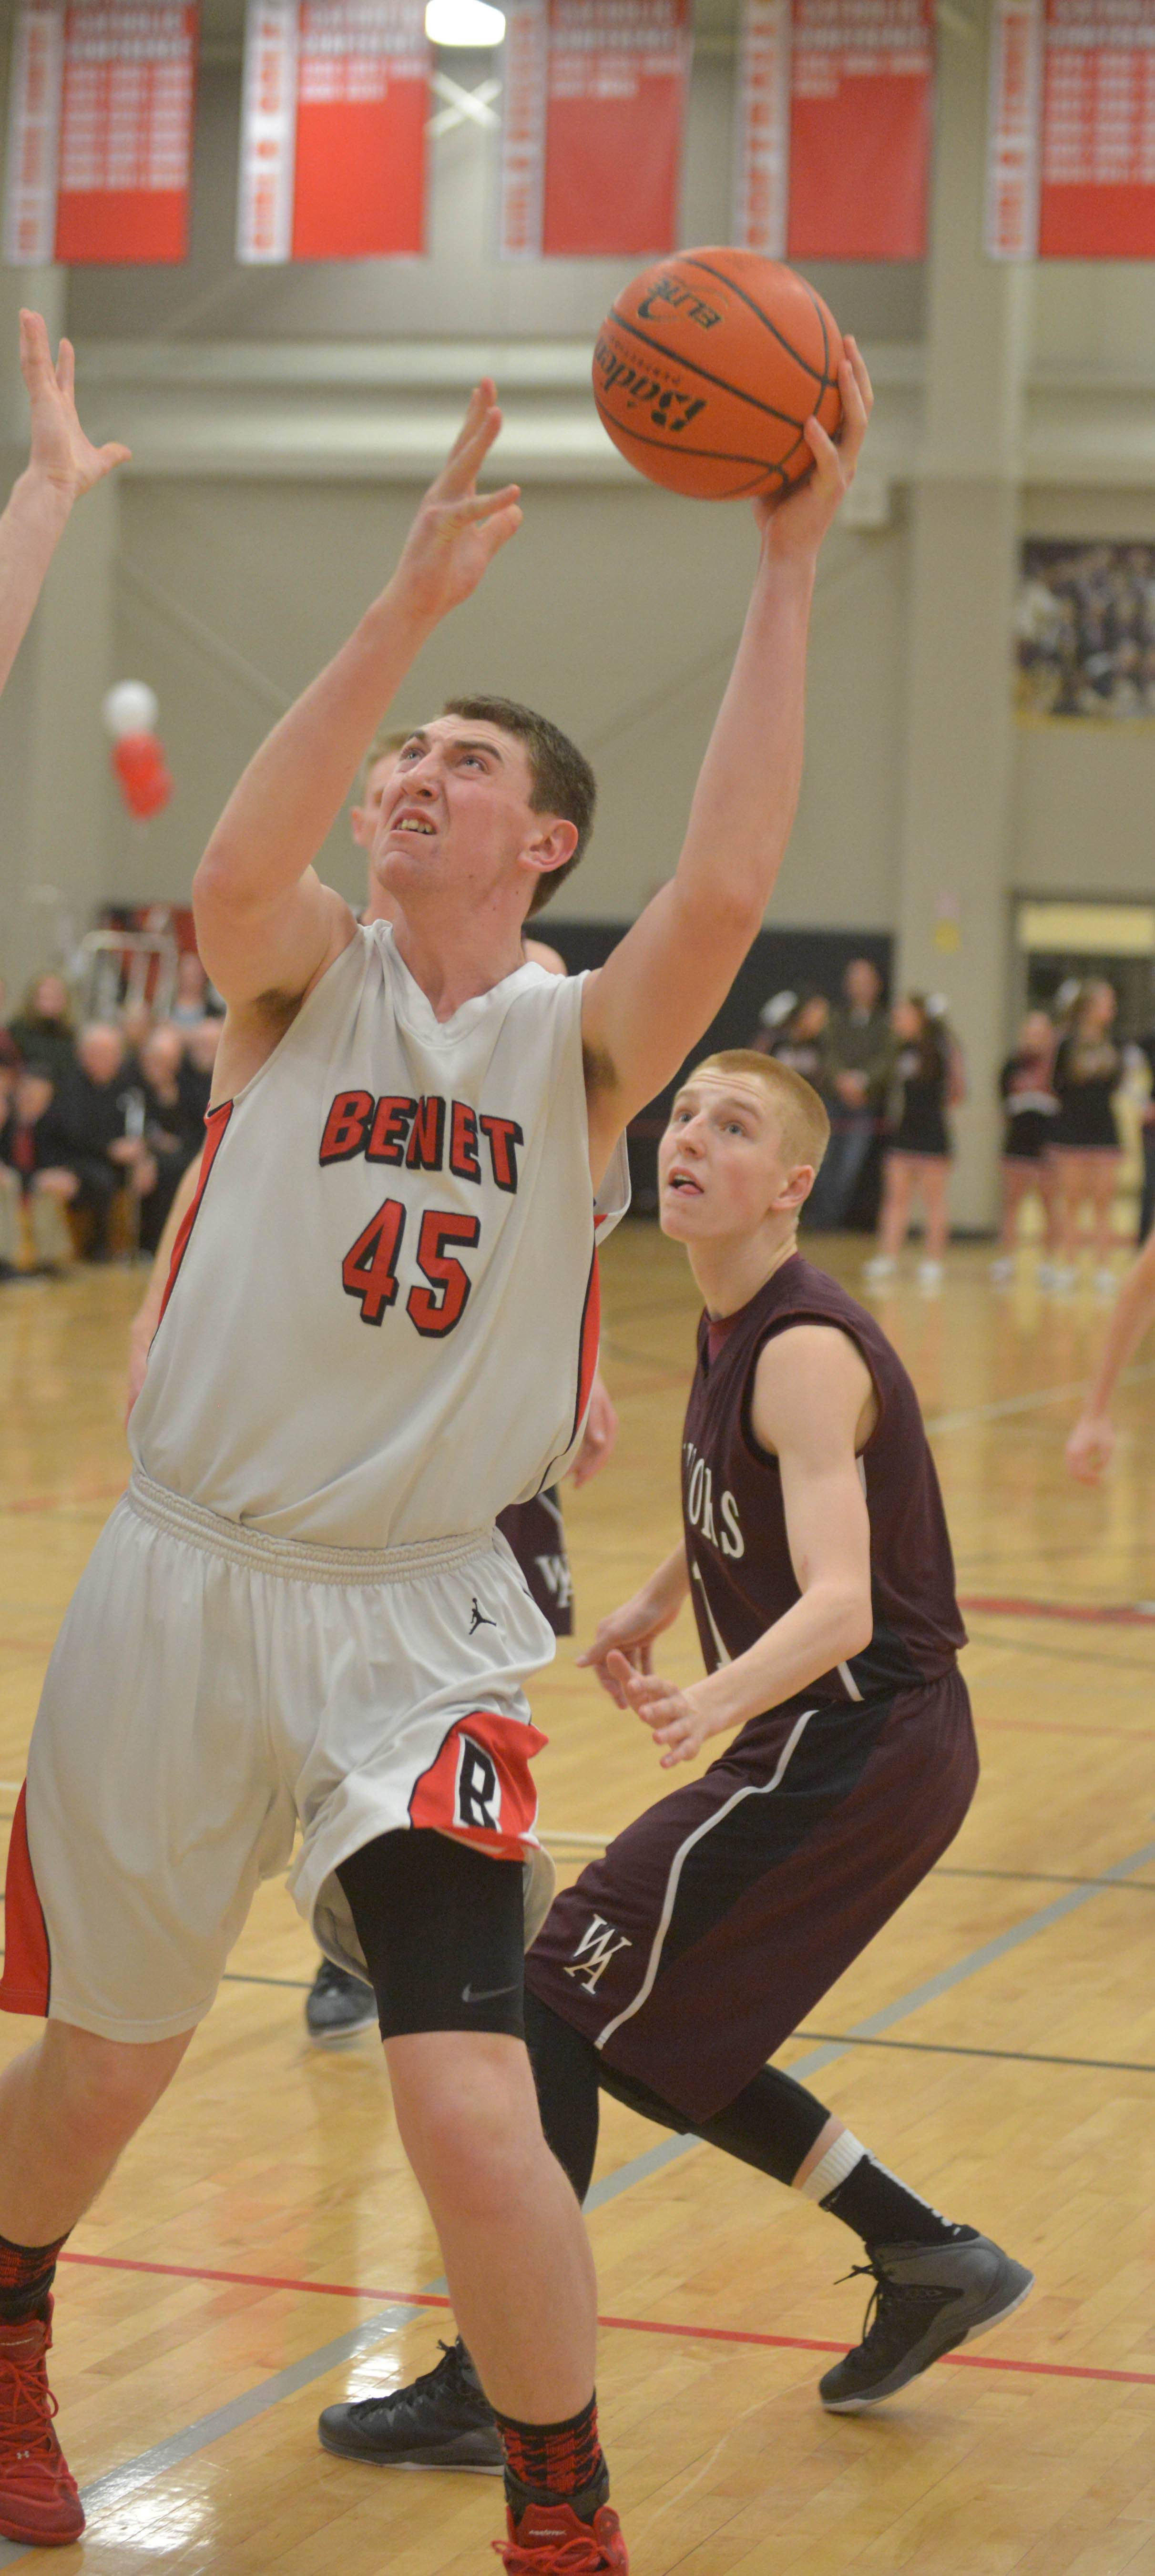 Benet's Sean O'Mara captains the Daily Herald's boys basketball all-area team in DuPage County.